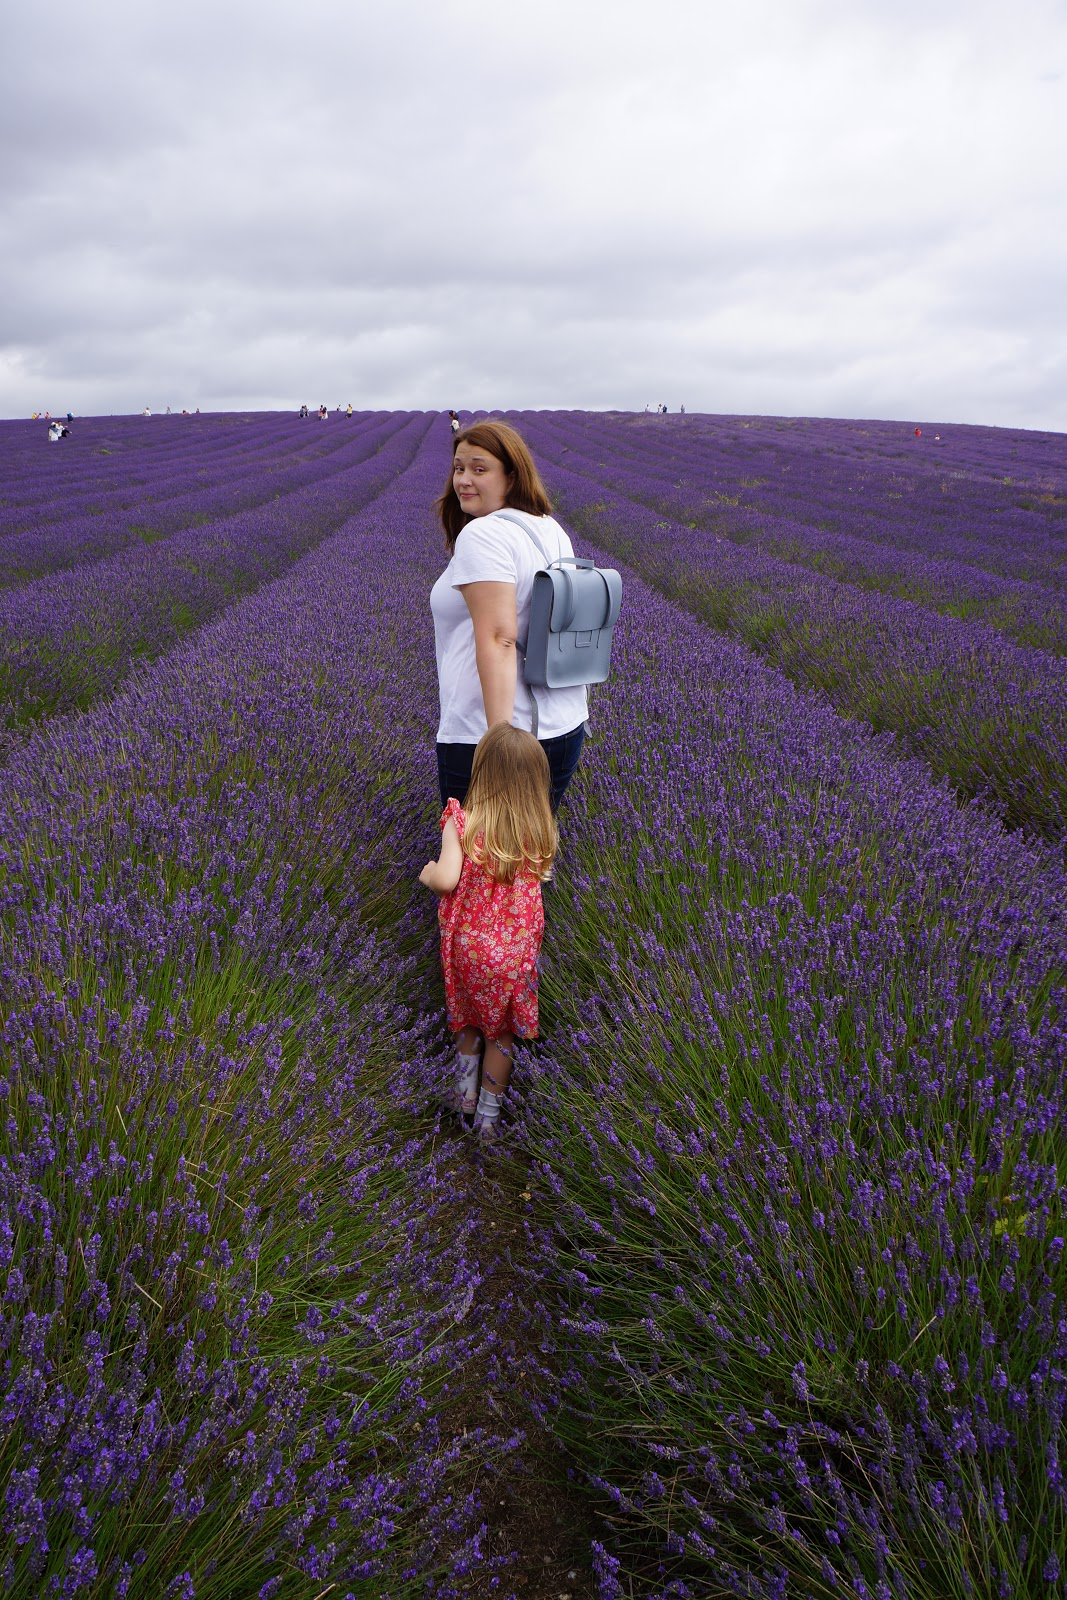 mum and daughter at lavender fields